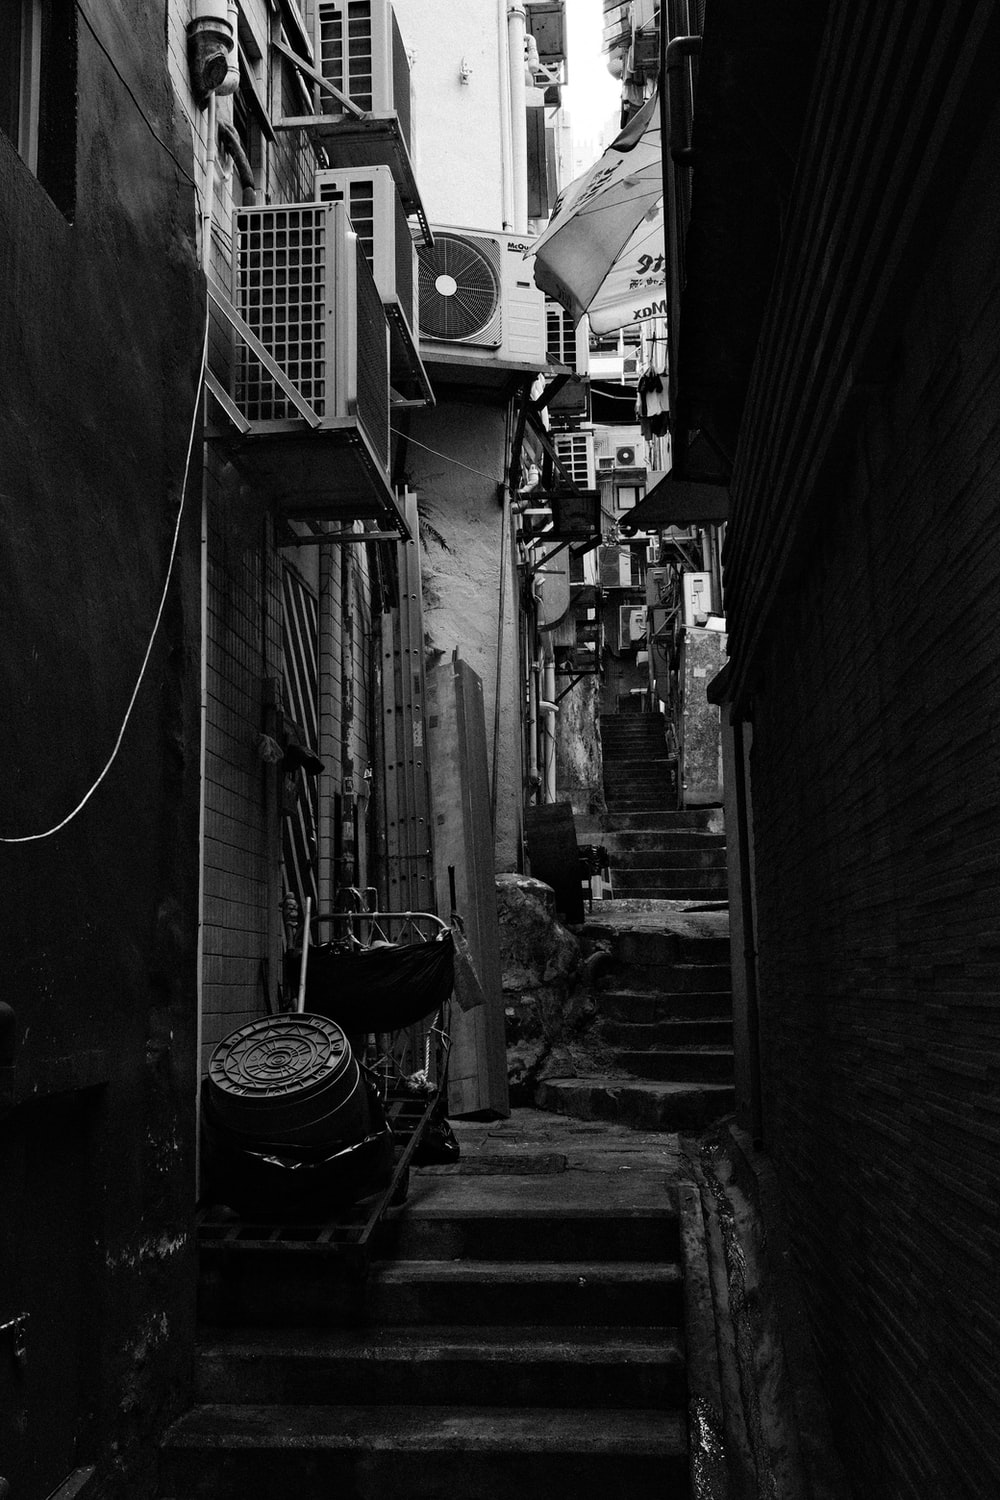 grayscale photo of a street